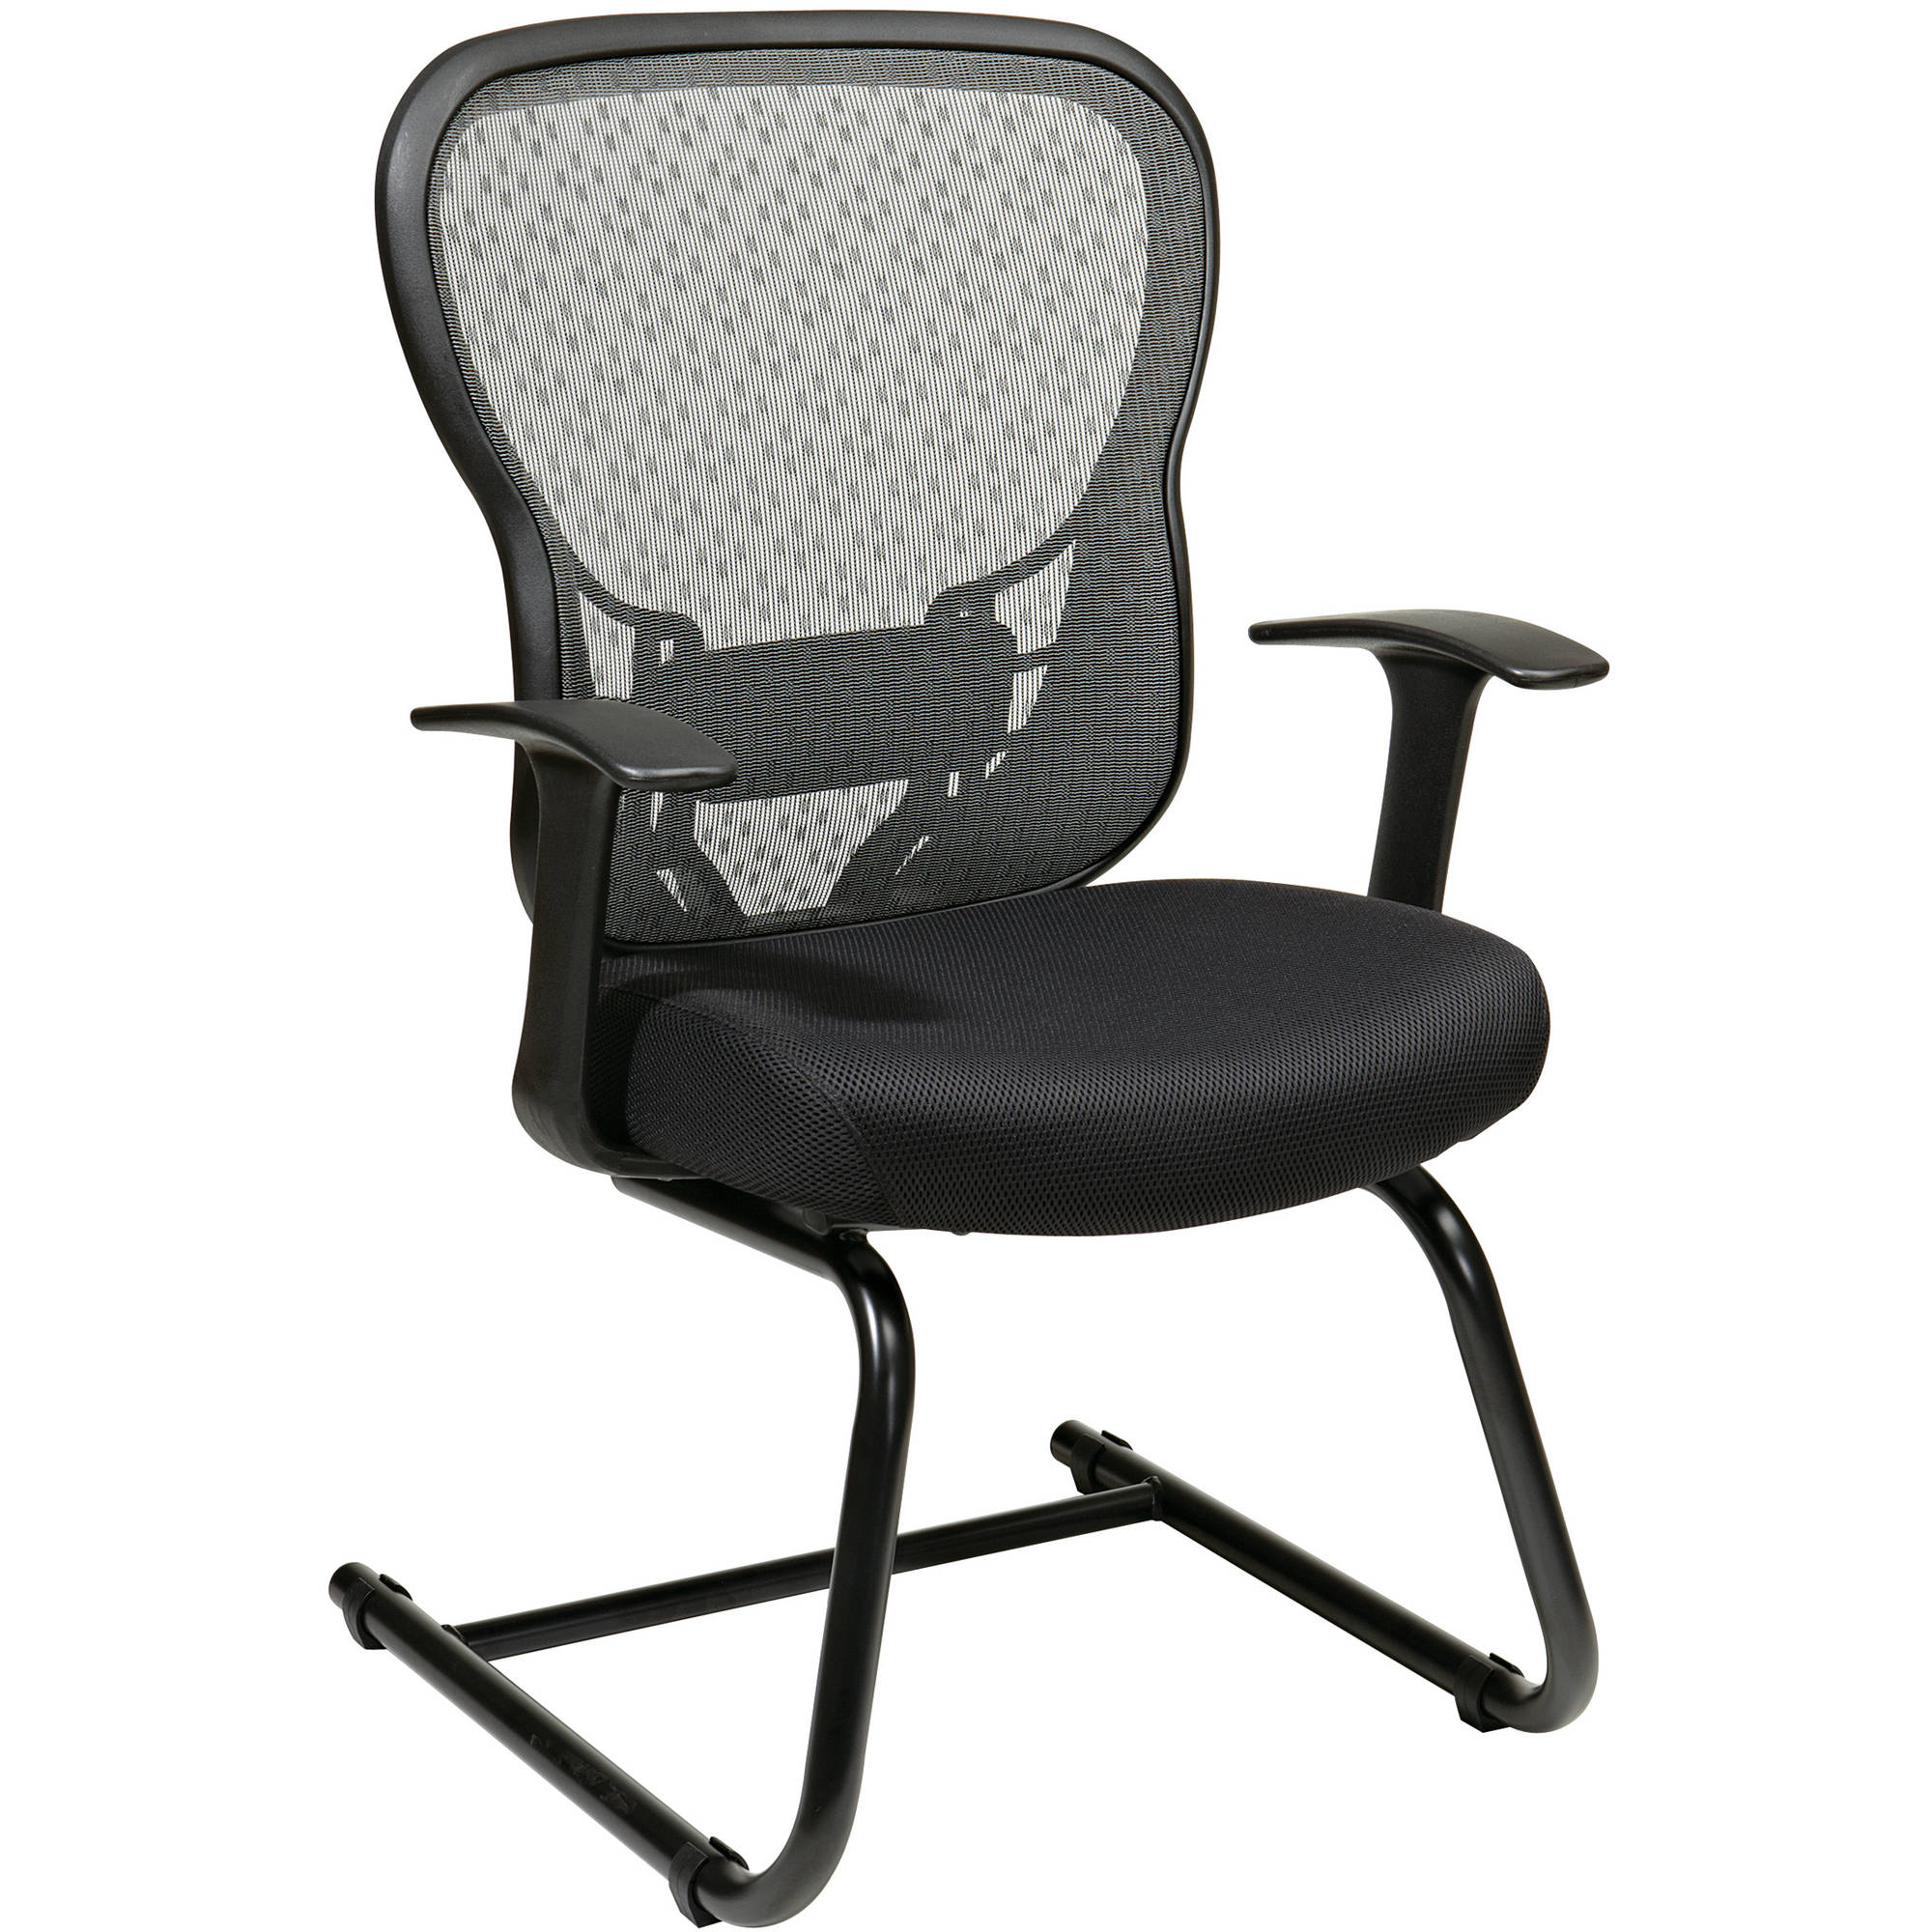 Space Seating Deluxe R2 SpaceGrid Back Visitors Chair, Black